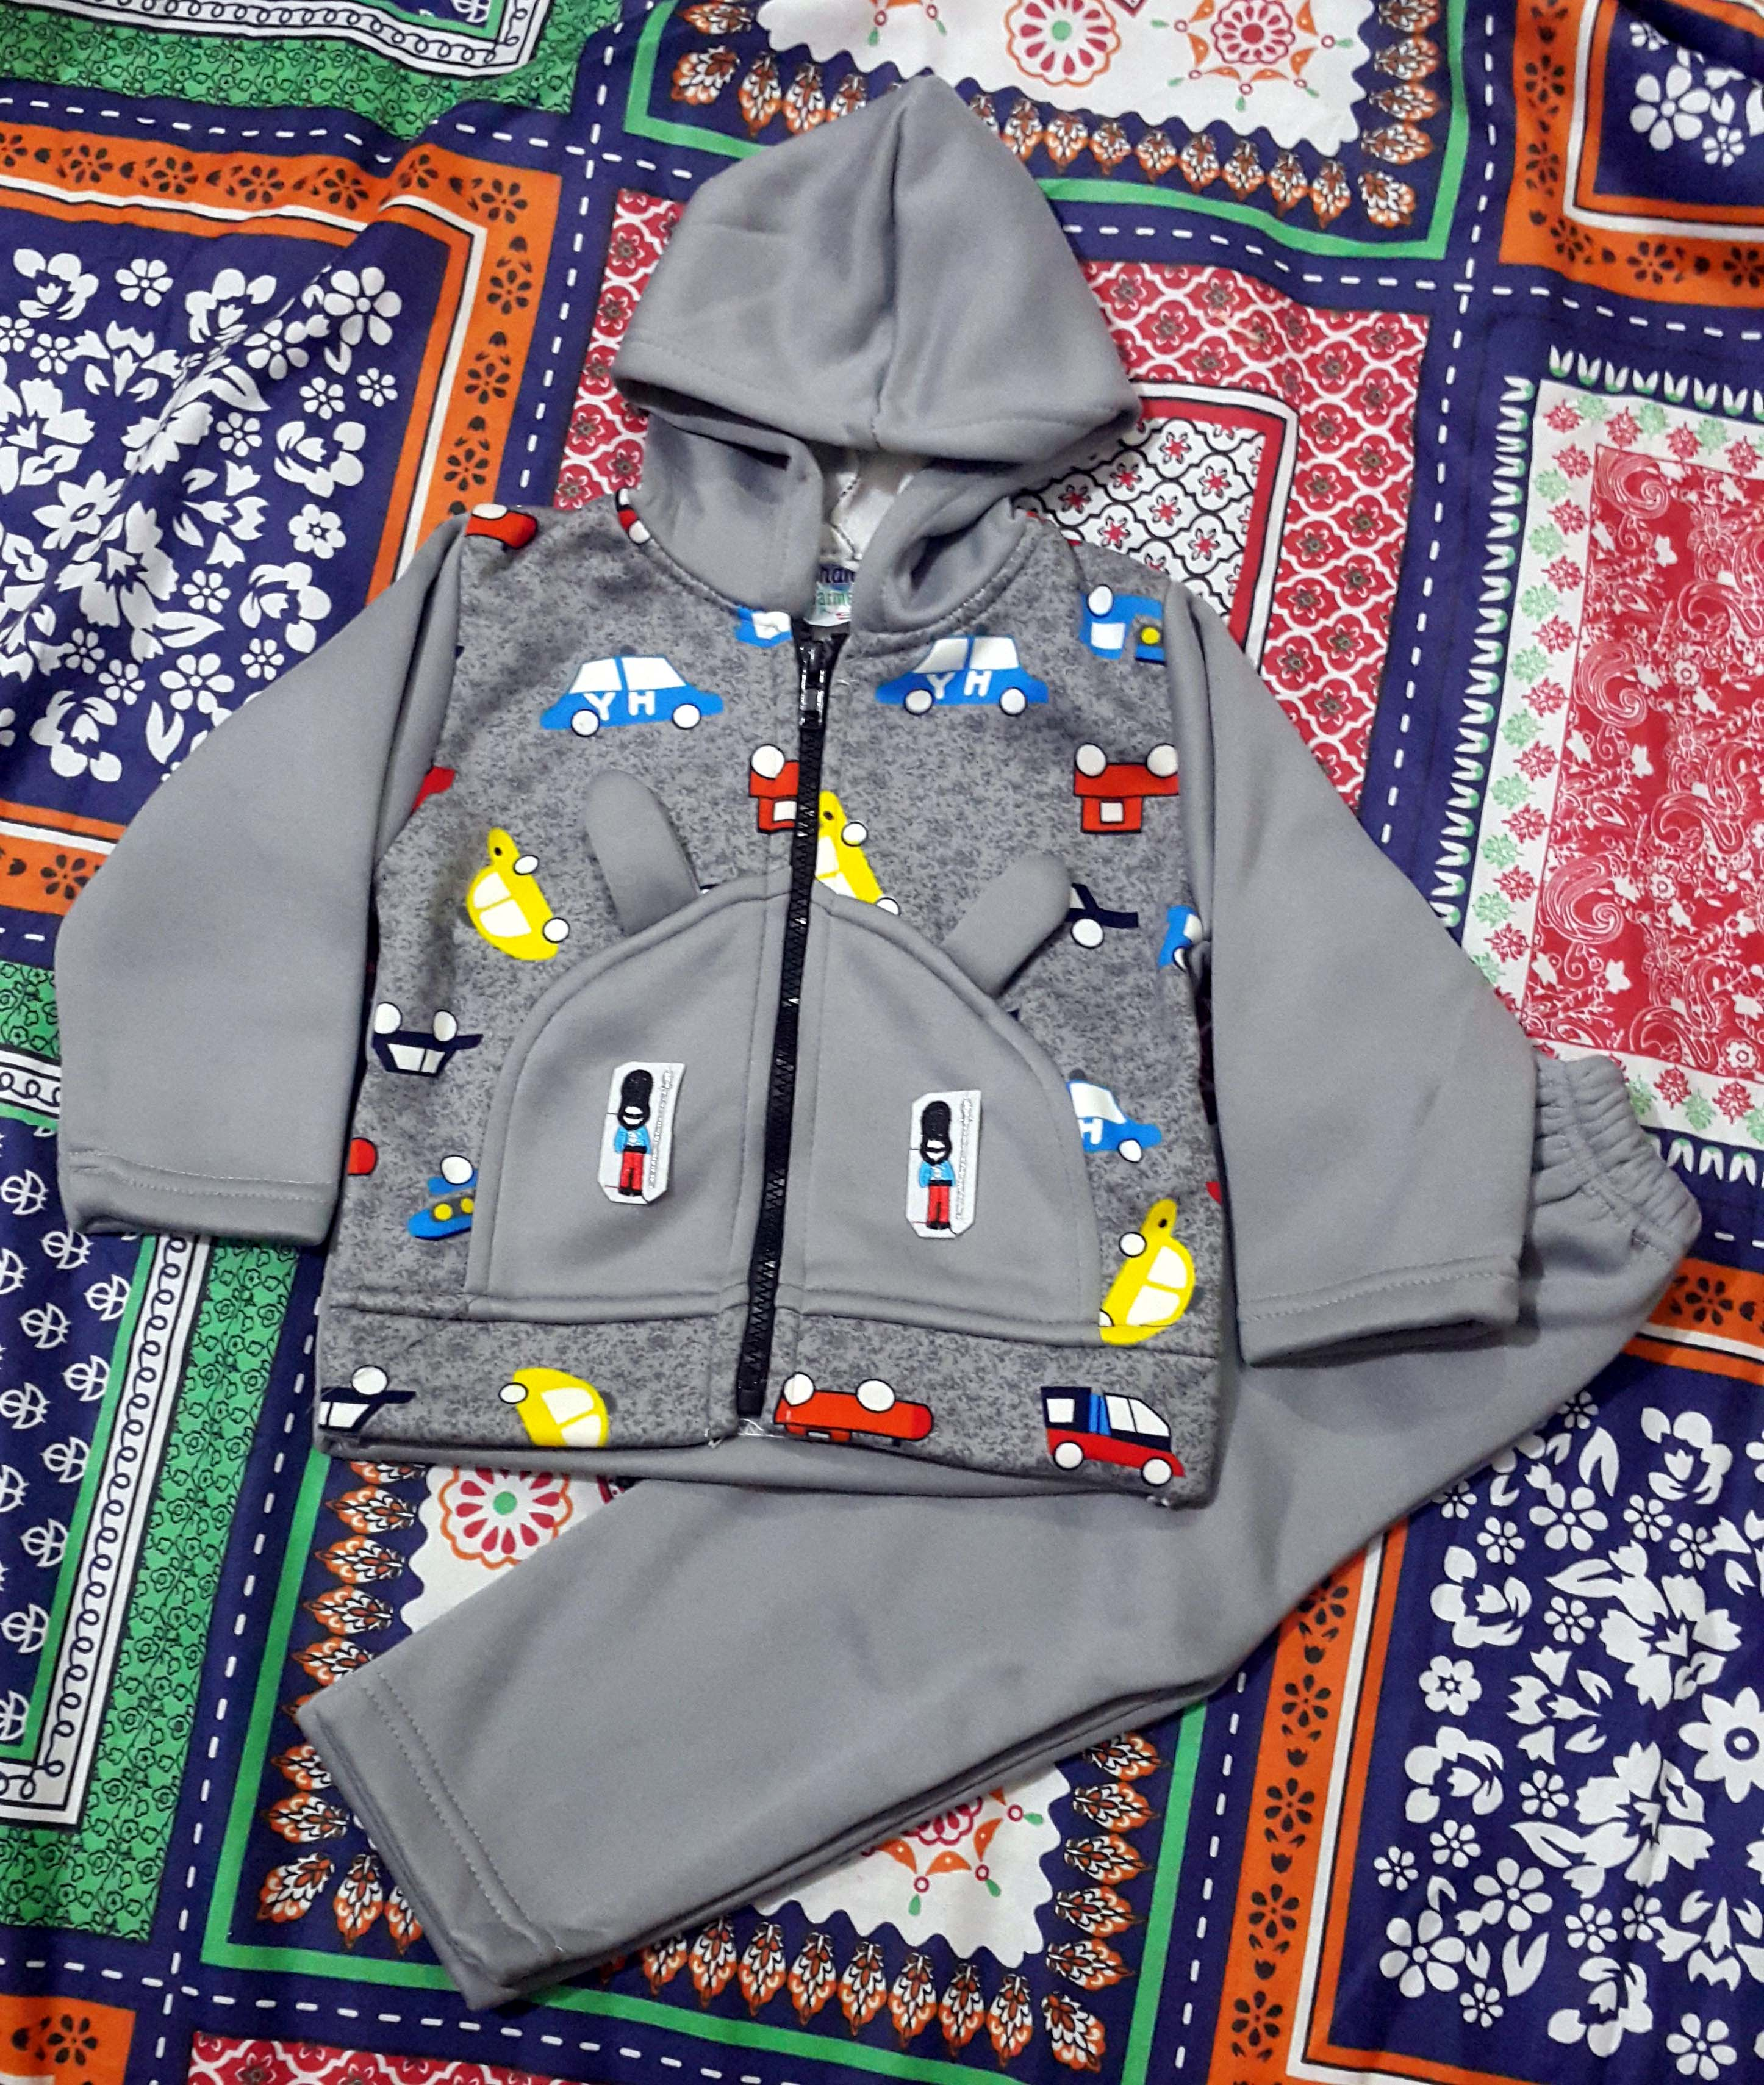 BABY BOY KID FULL SLEEVES FLEECE HODDY AND TROUSER WARM CLOTHES SUIT FOR WINTER CLOTHING HOODIES